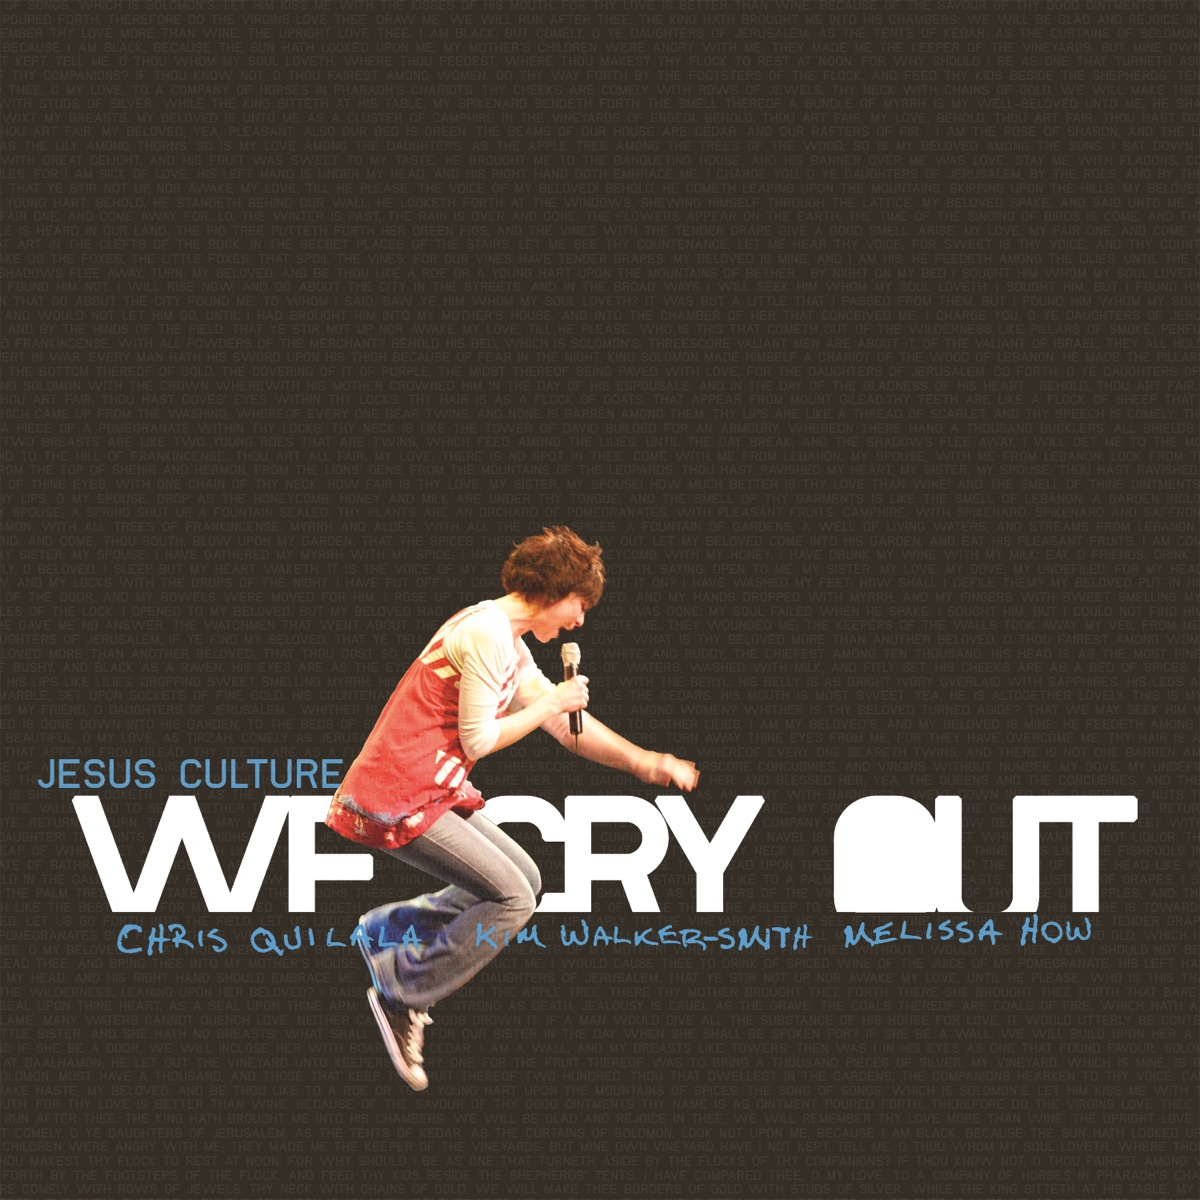 We Cry Out Live Jesus Culture CD cover